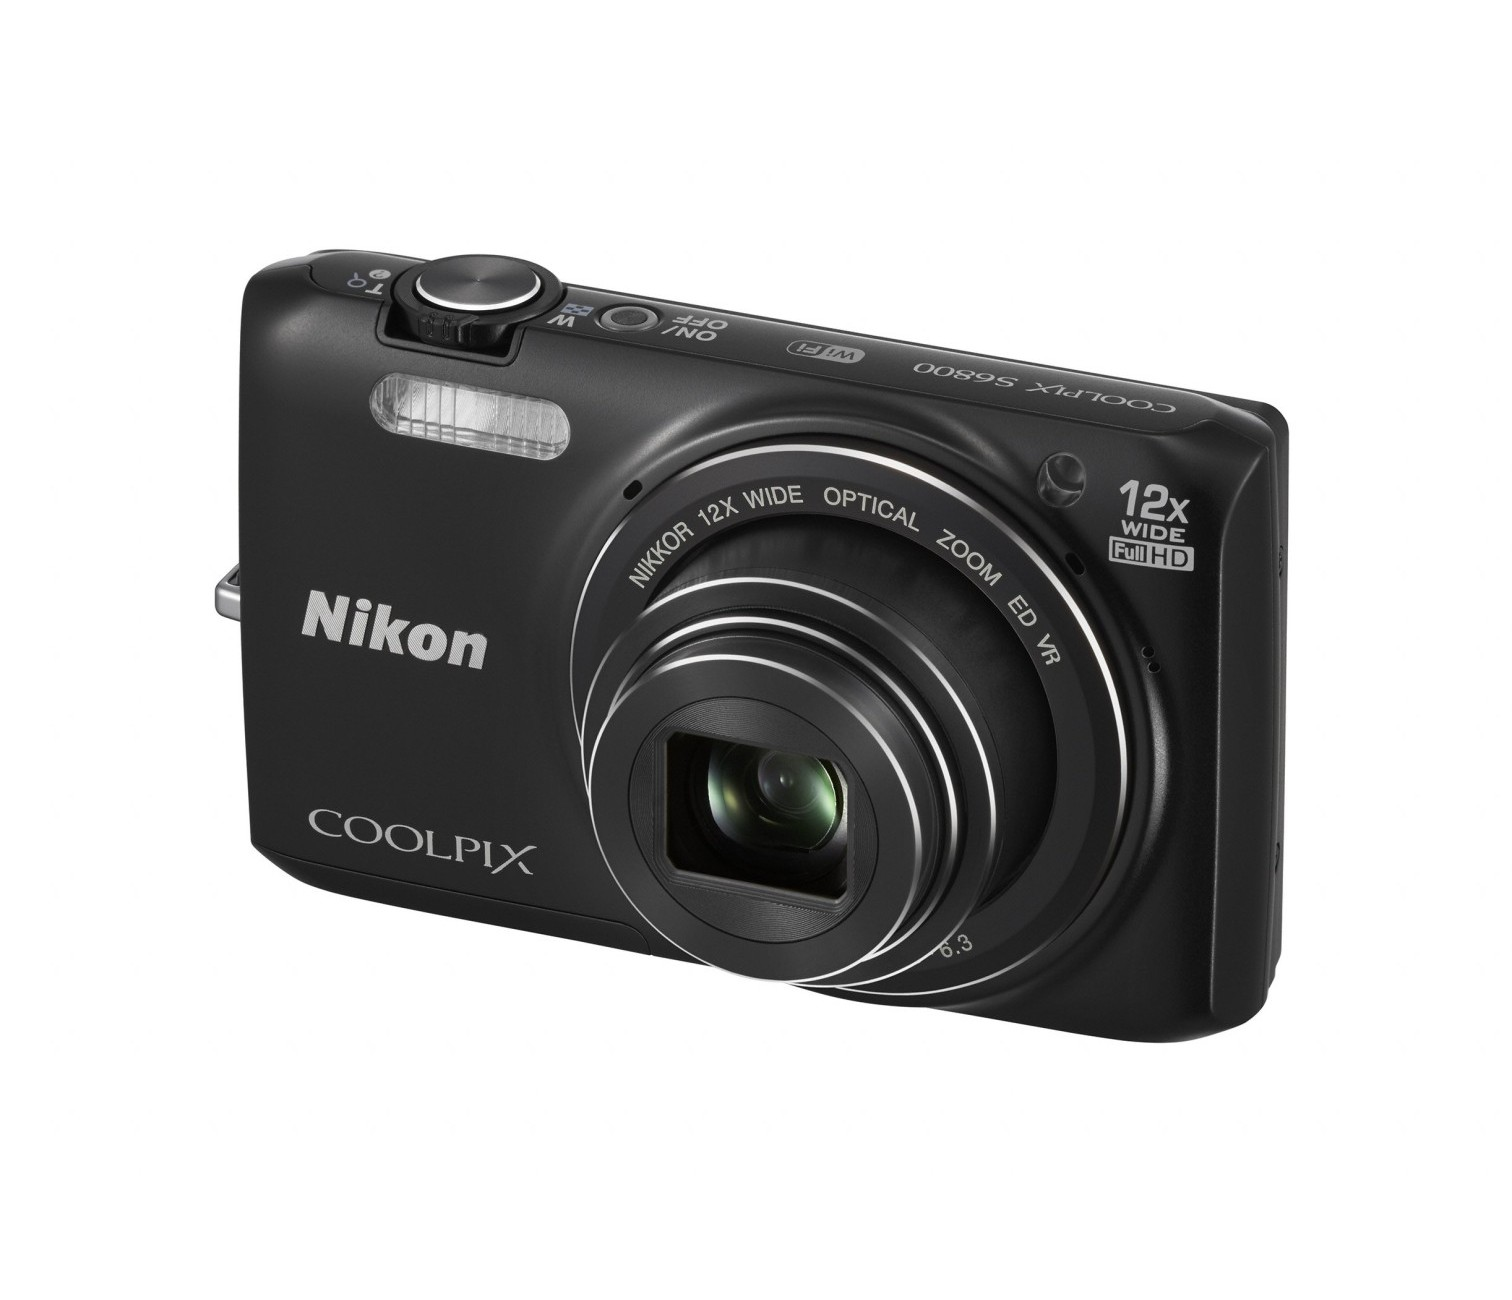 CES-2014-Nikon-Announces-5-New-COOLPIX-S-Series-Digital-Cameras-414545